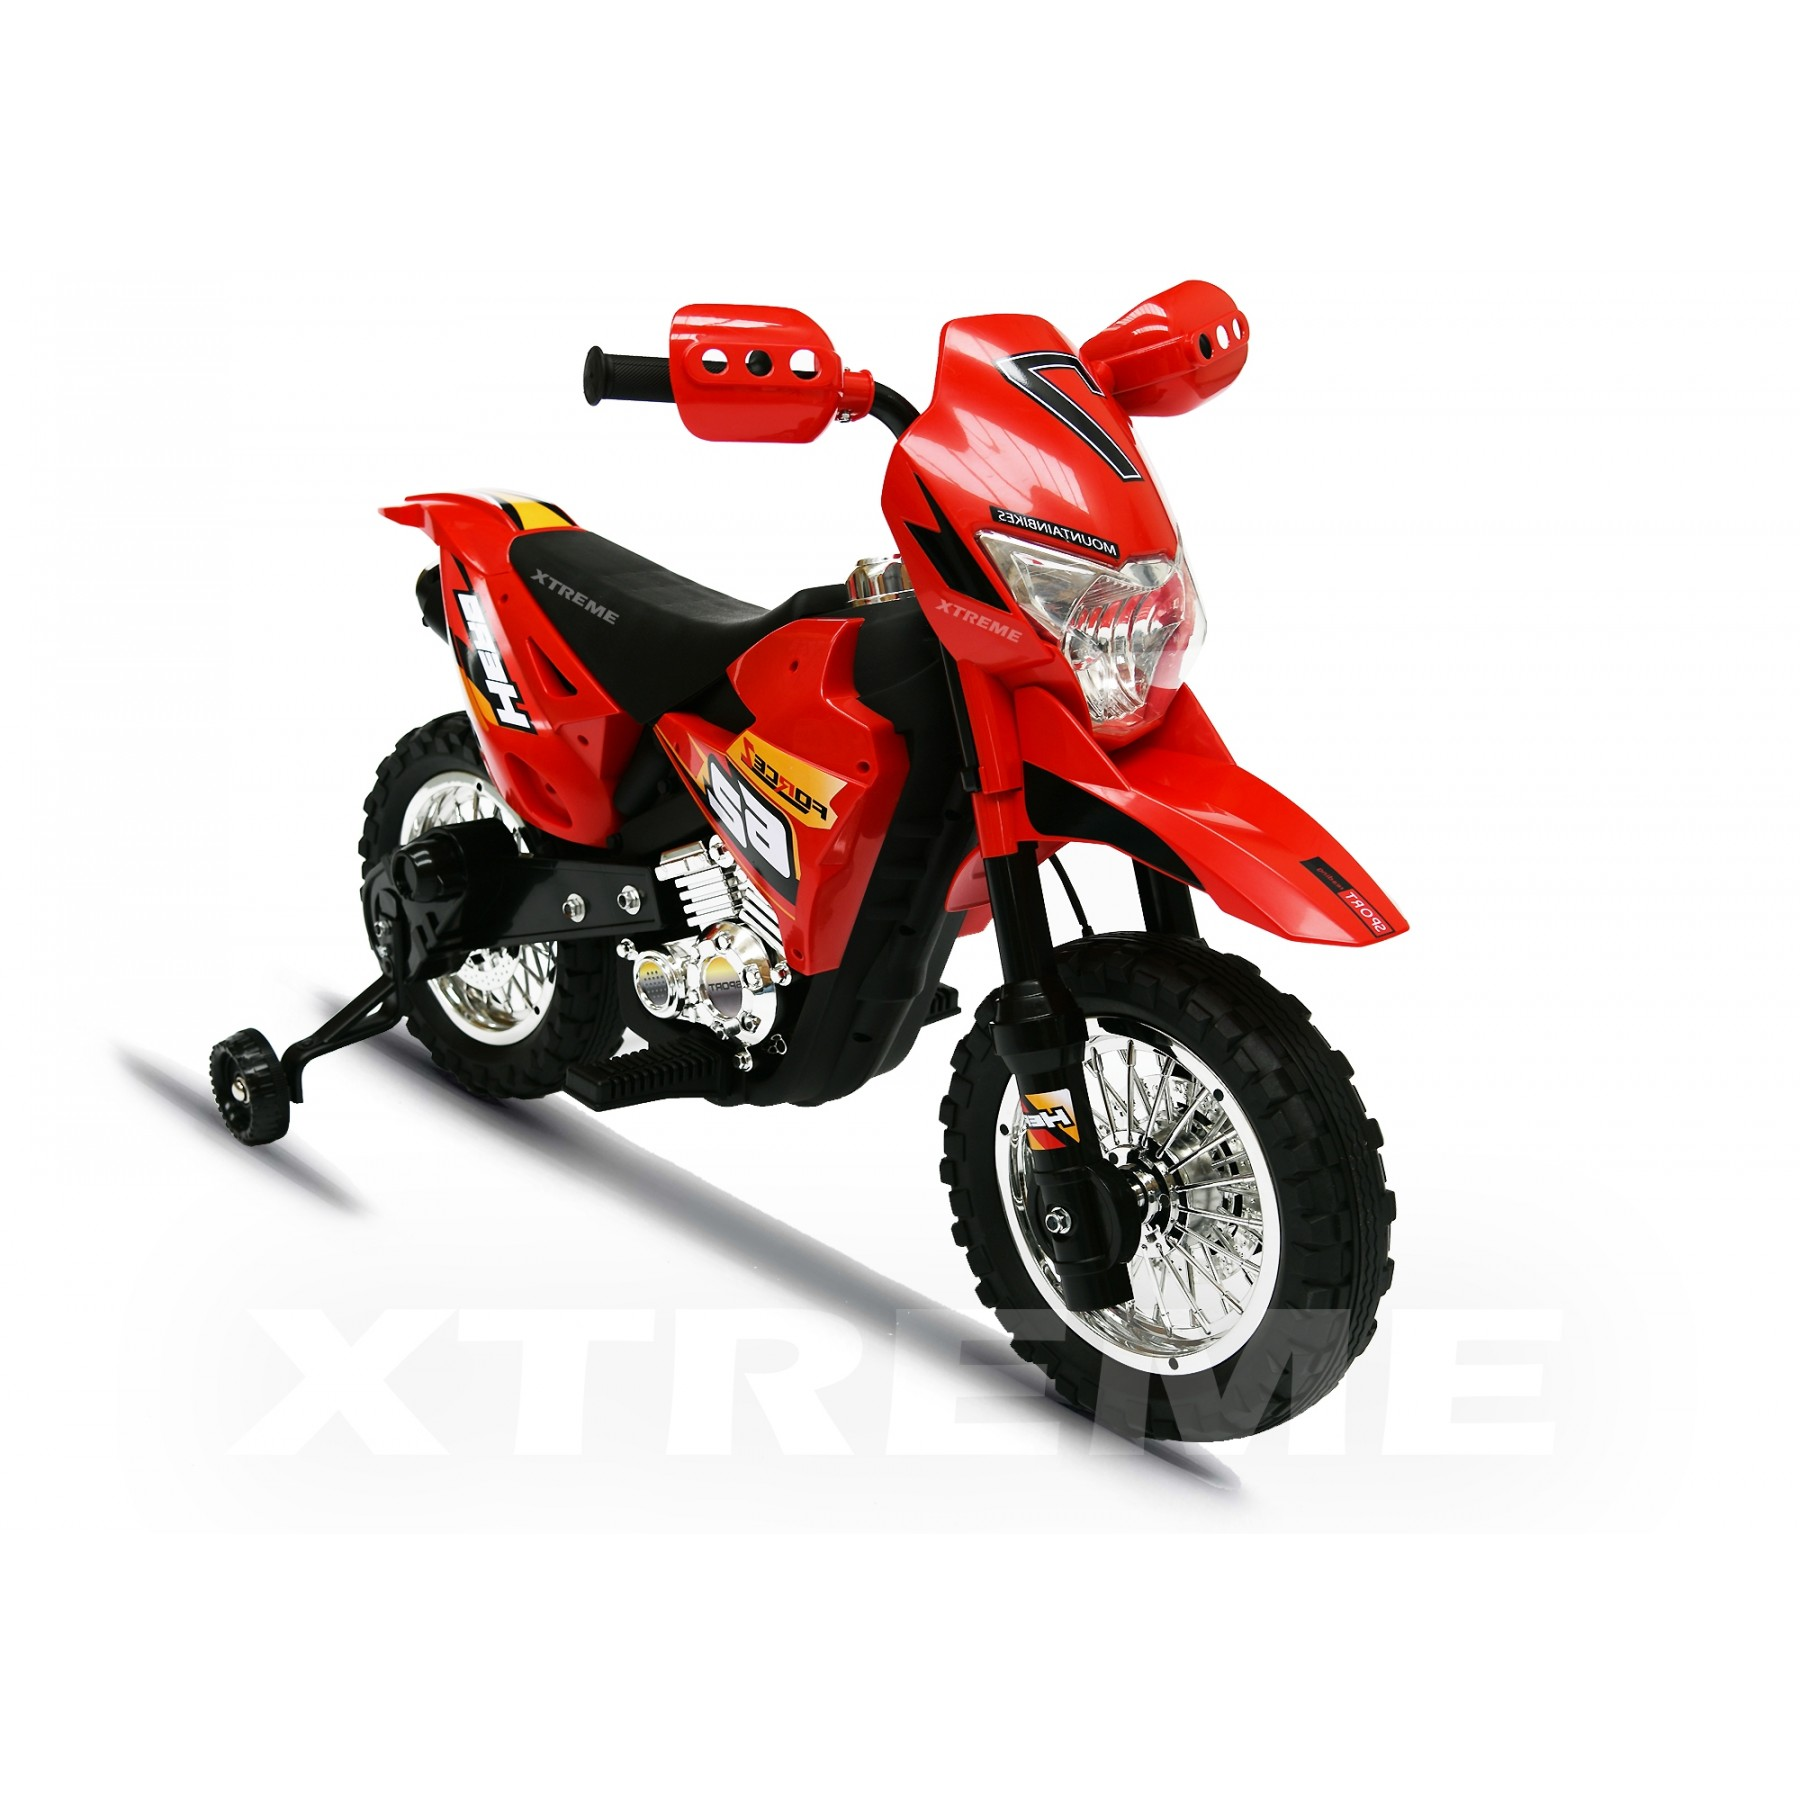 6v Xtreme Electric Scrambler Motorbike Ride on Car in Red